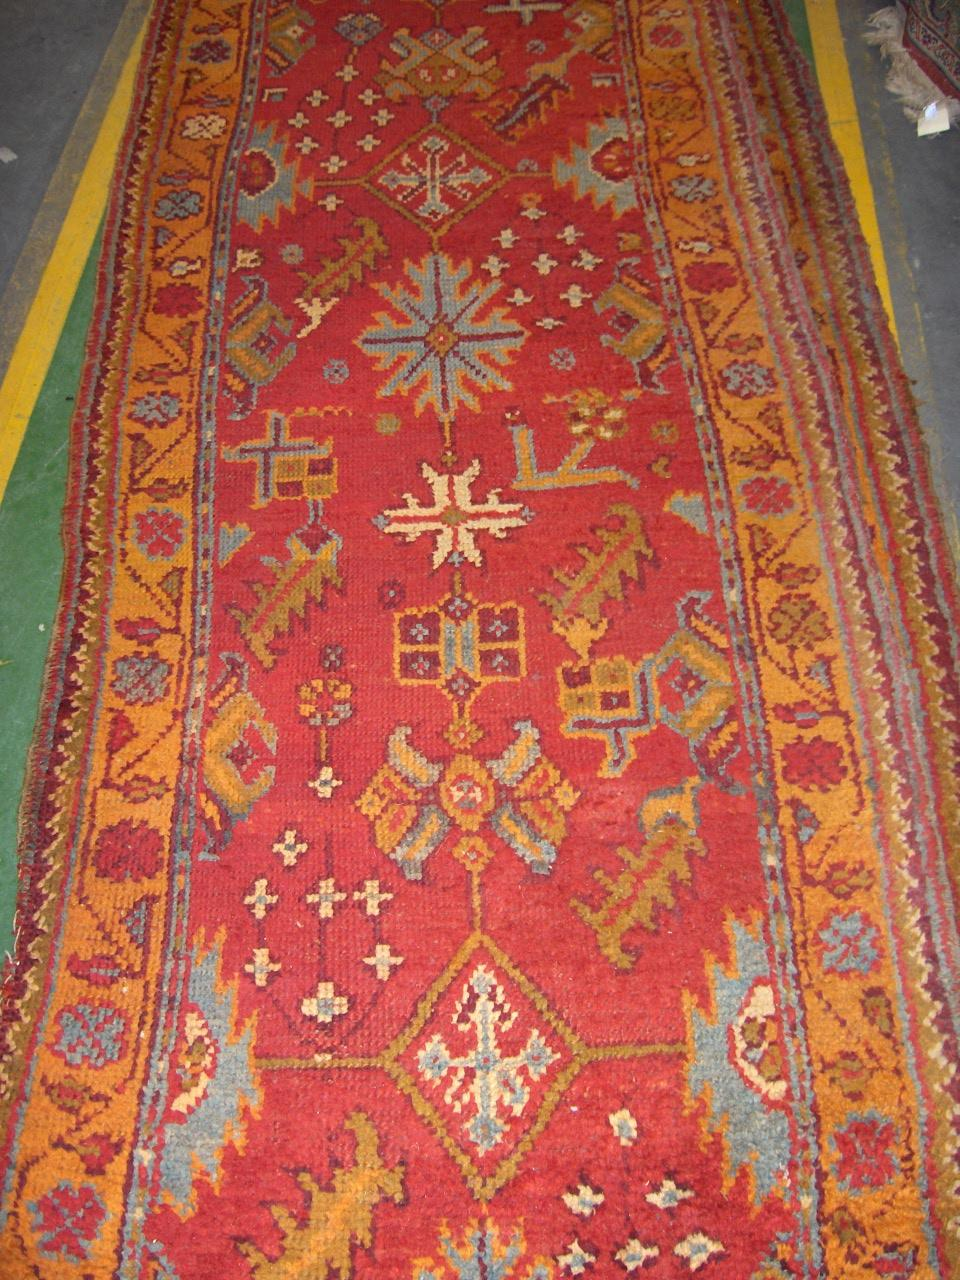 An Ushak runner West Anatolia, each measuring approx 364cm x 83cm together with two other similar runners (3)